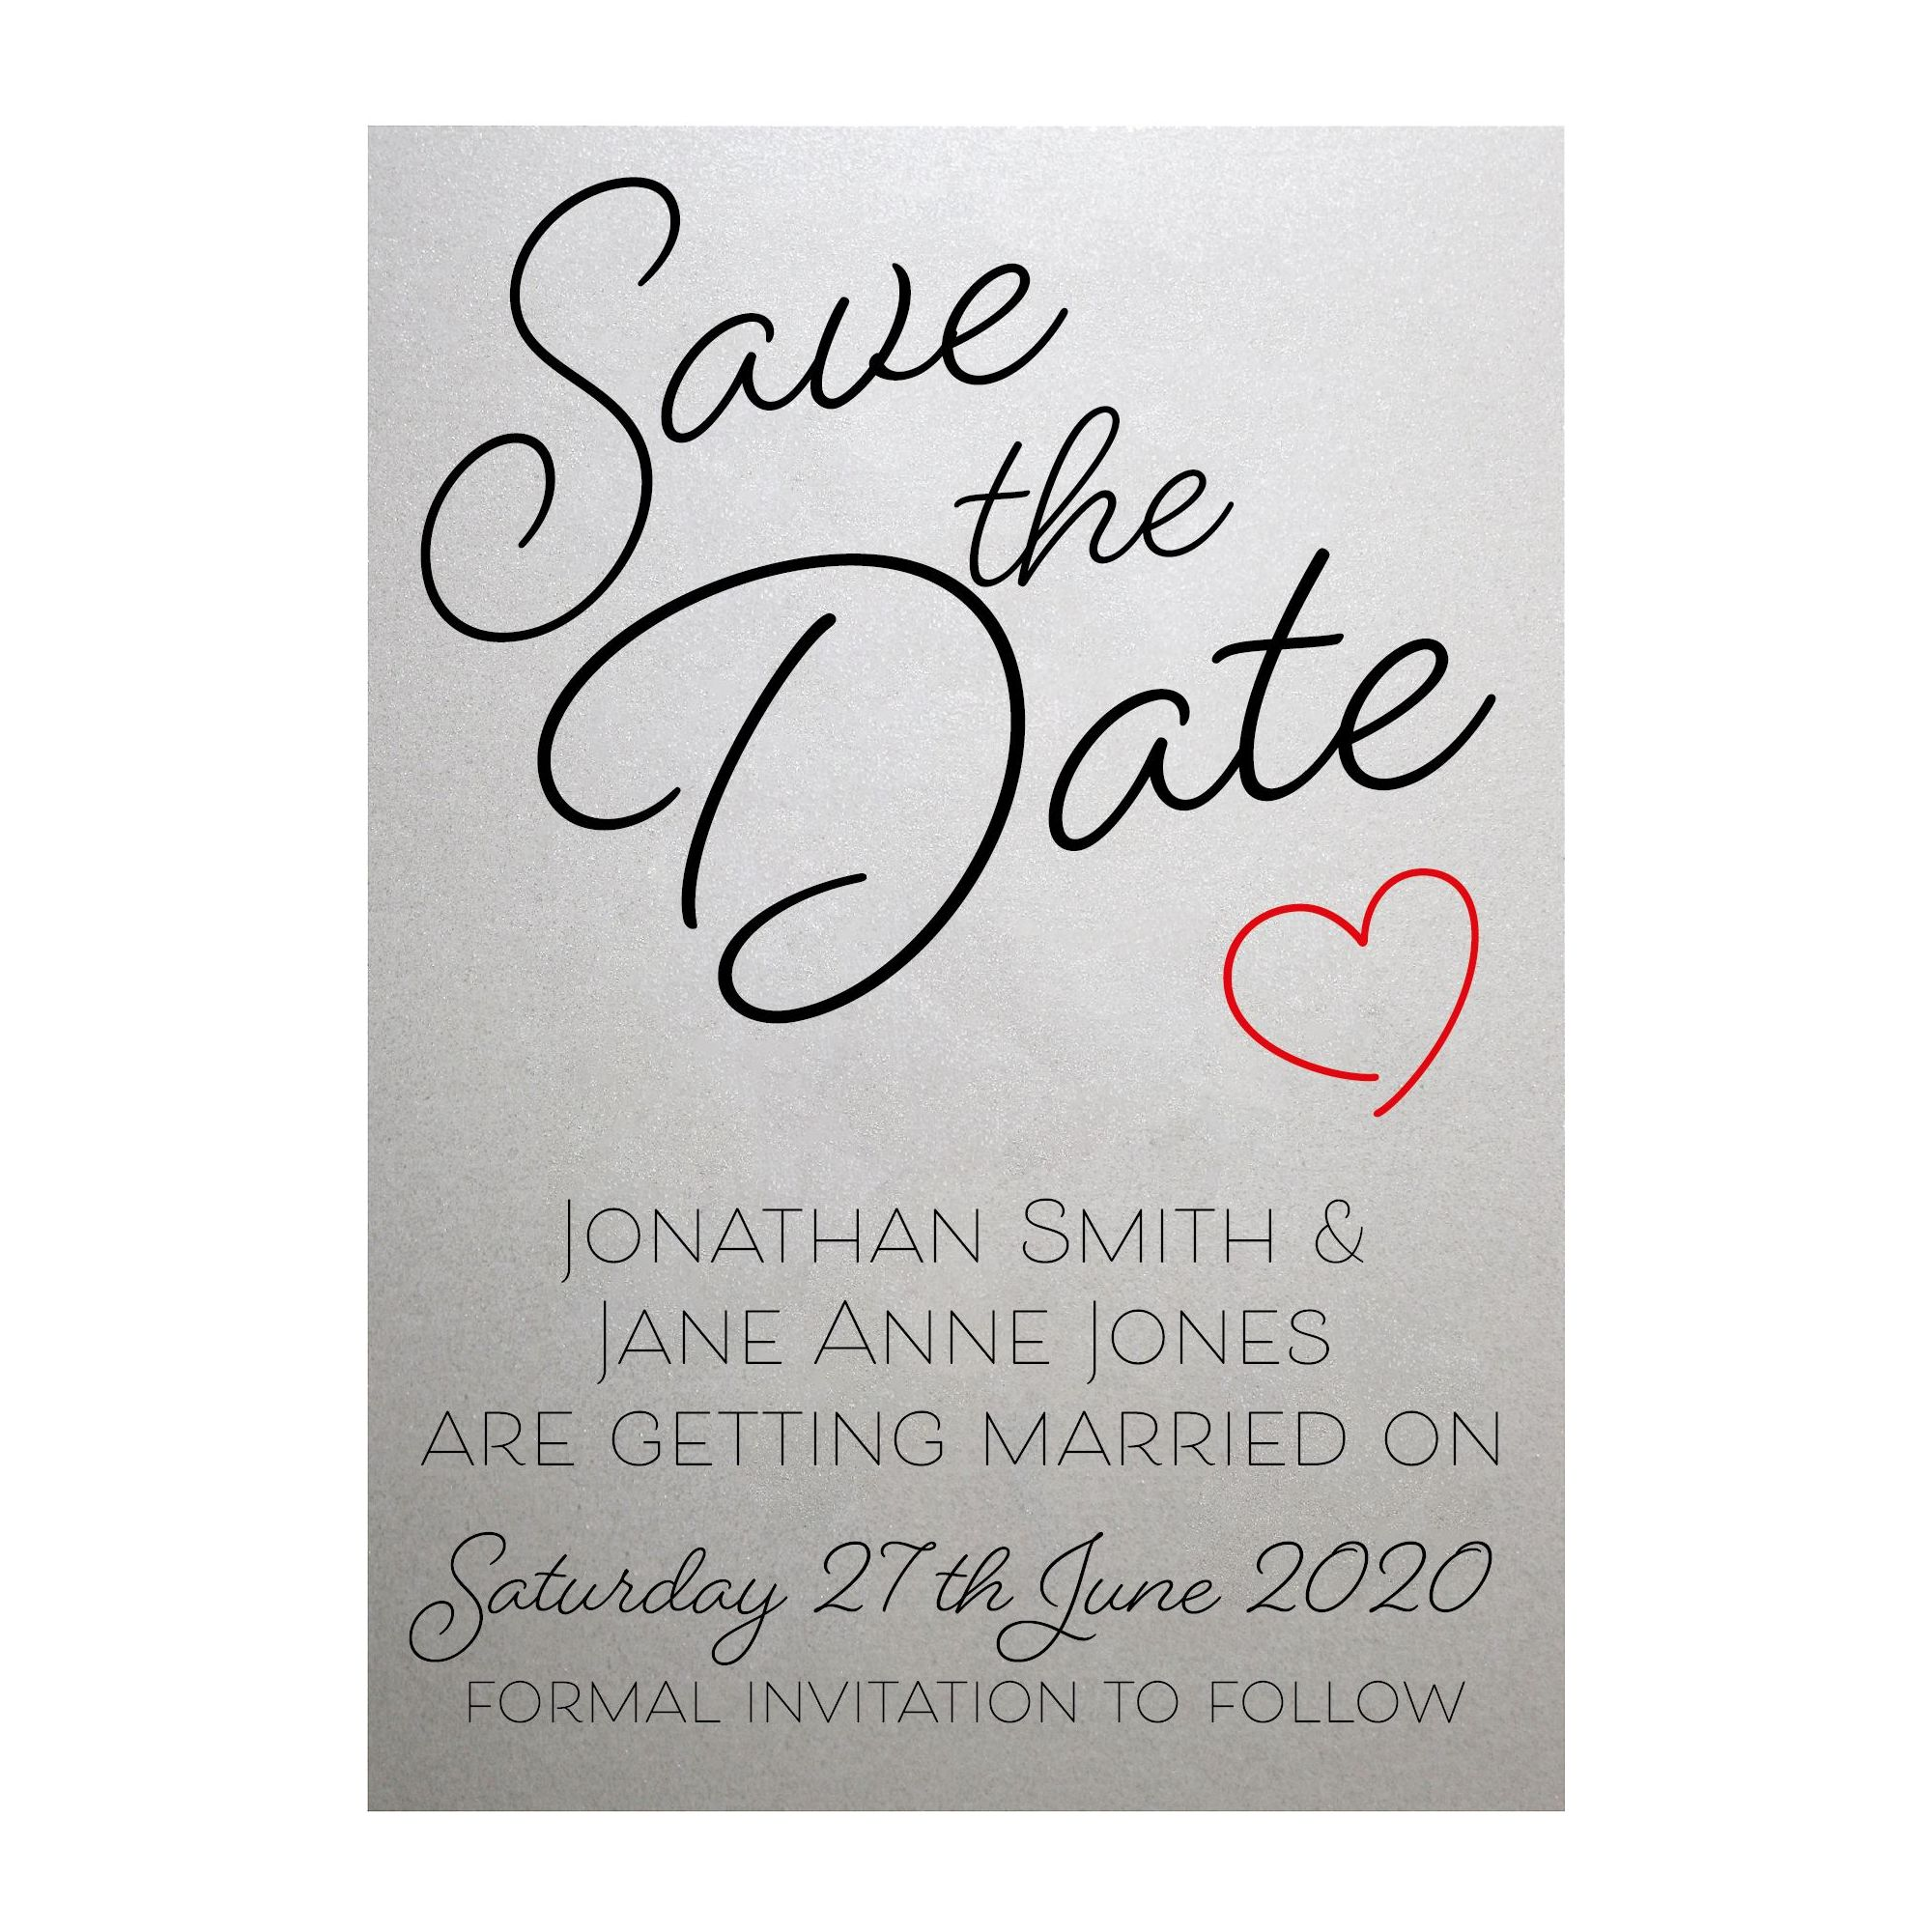 Shimmer Arctic White Cute Heart Save the Date Cards